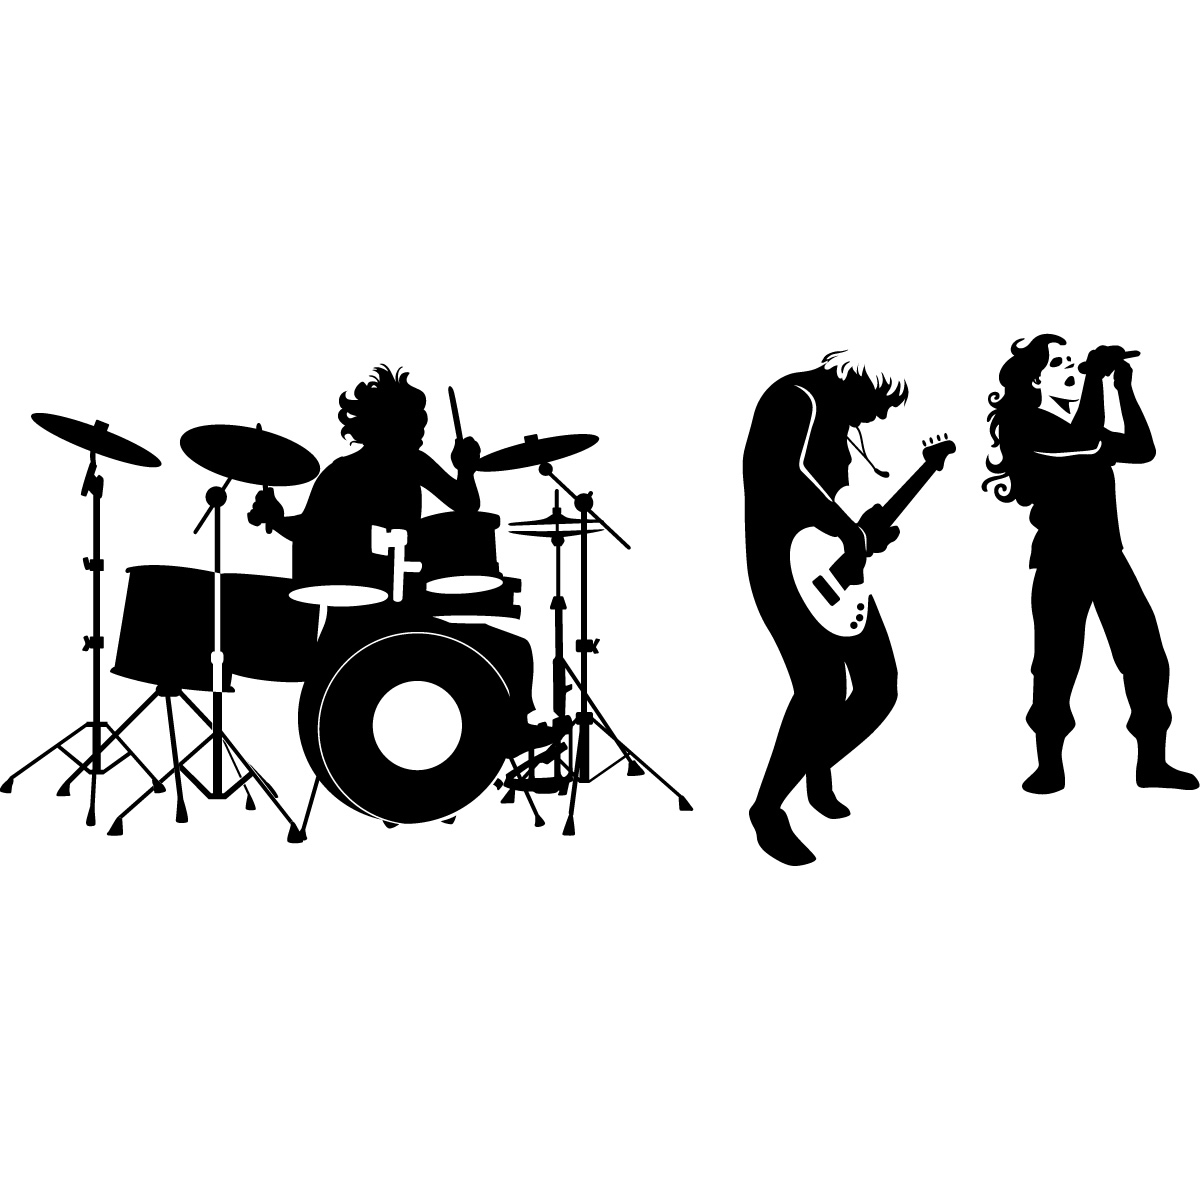 rock band music the - photo #31